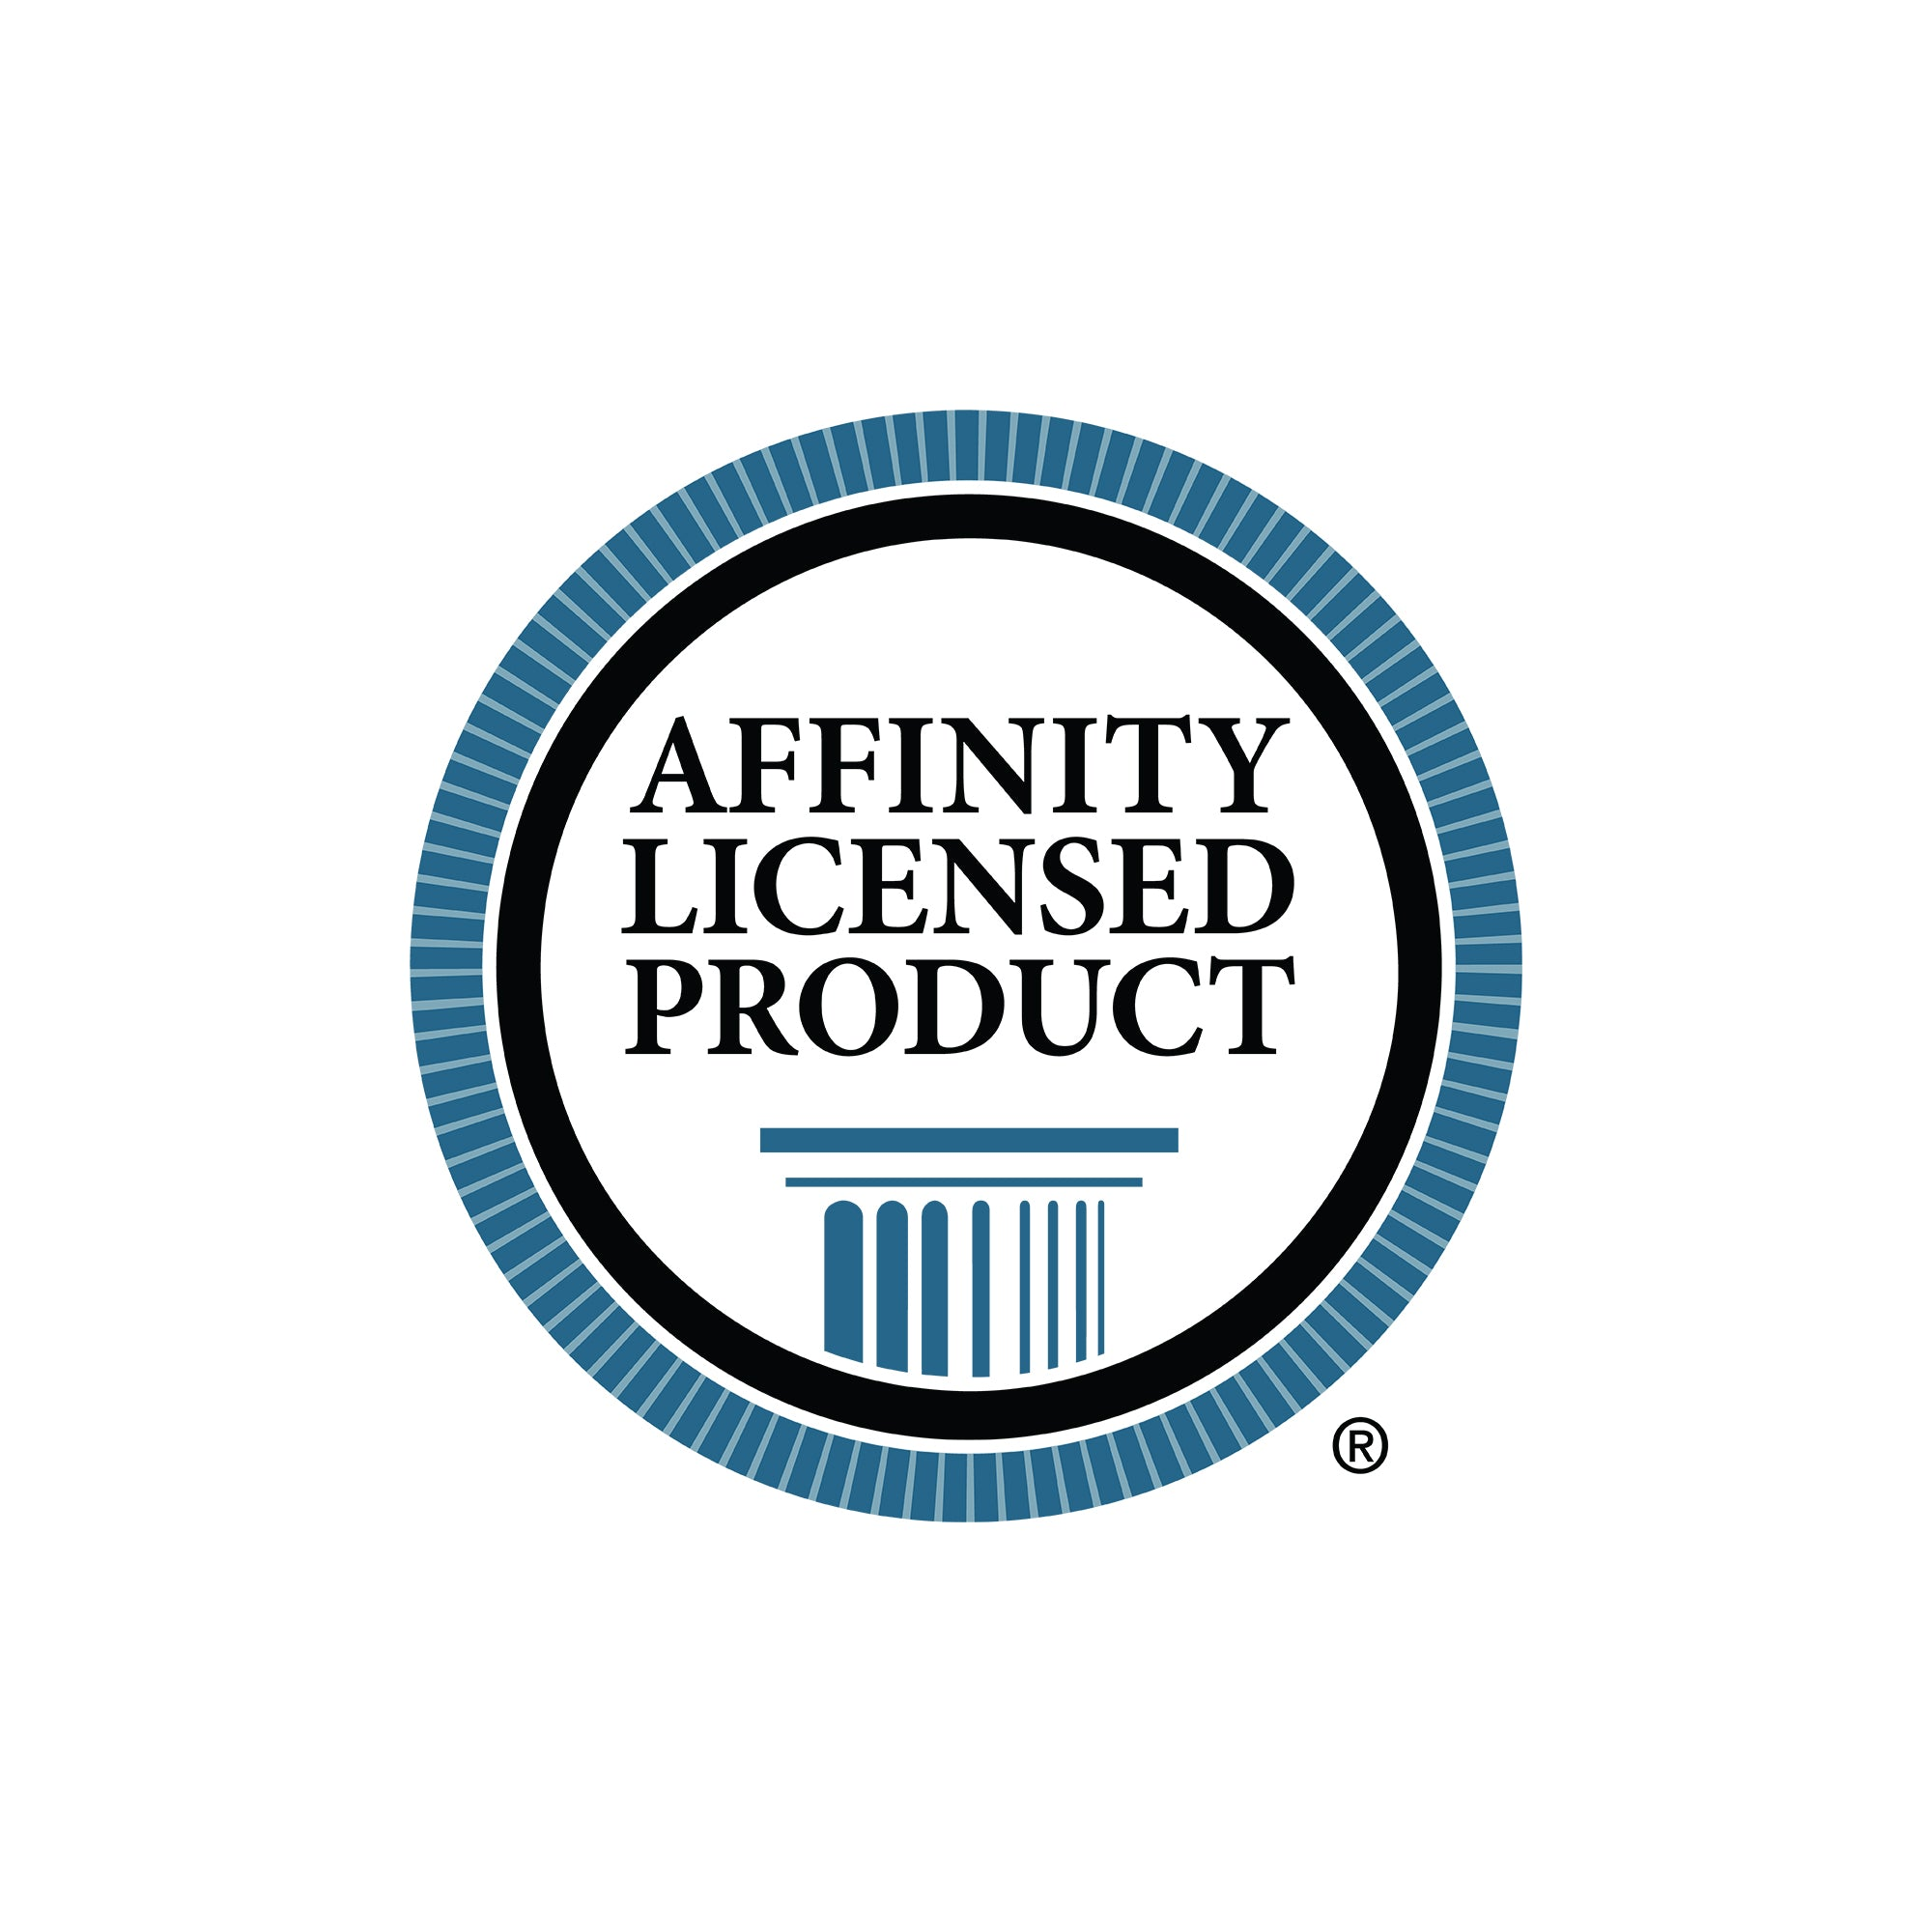 Affinity Officially Licensed Product